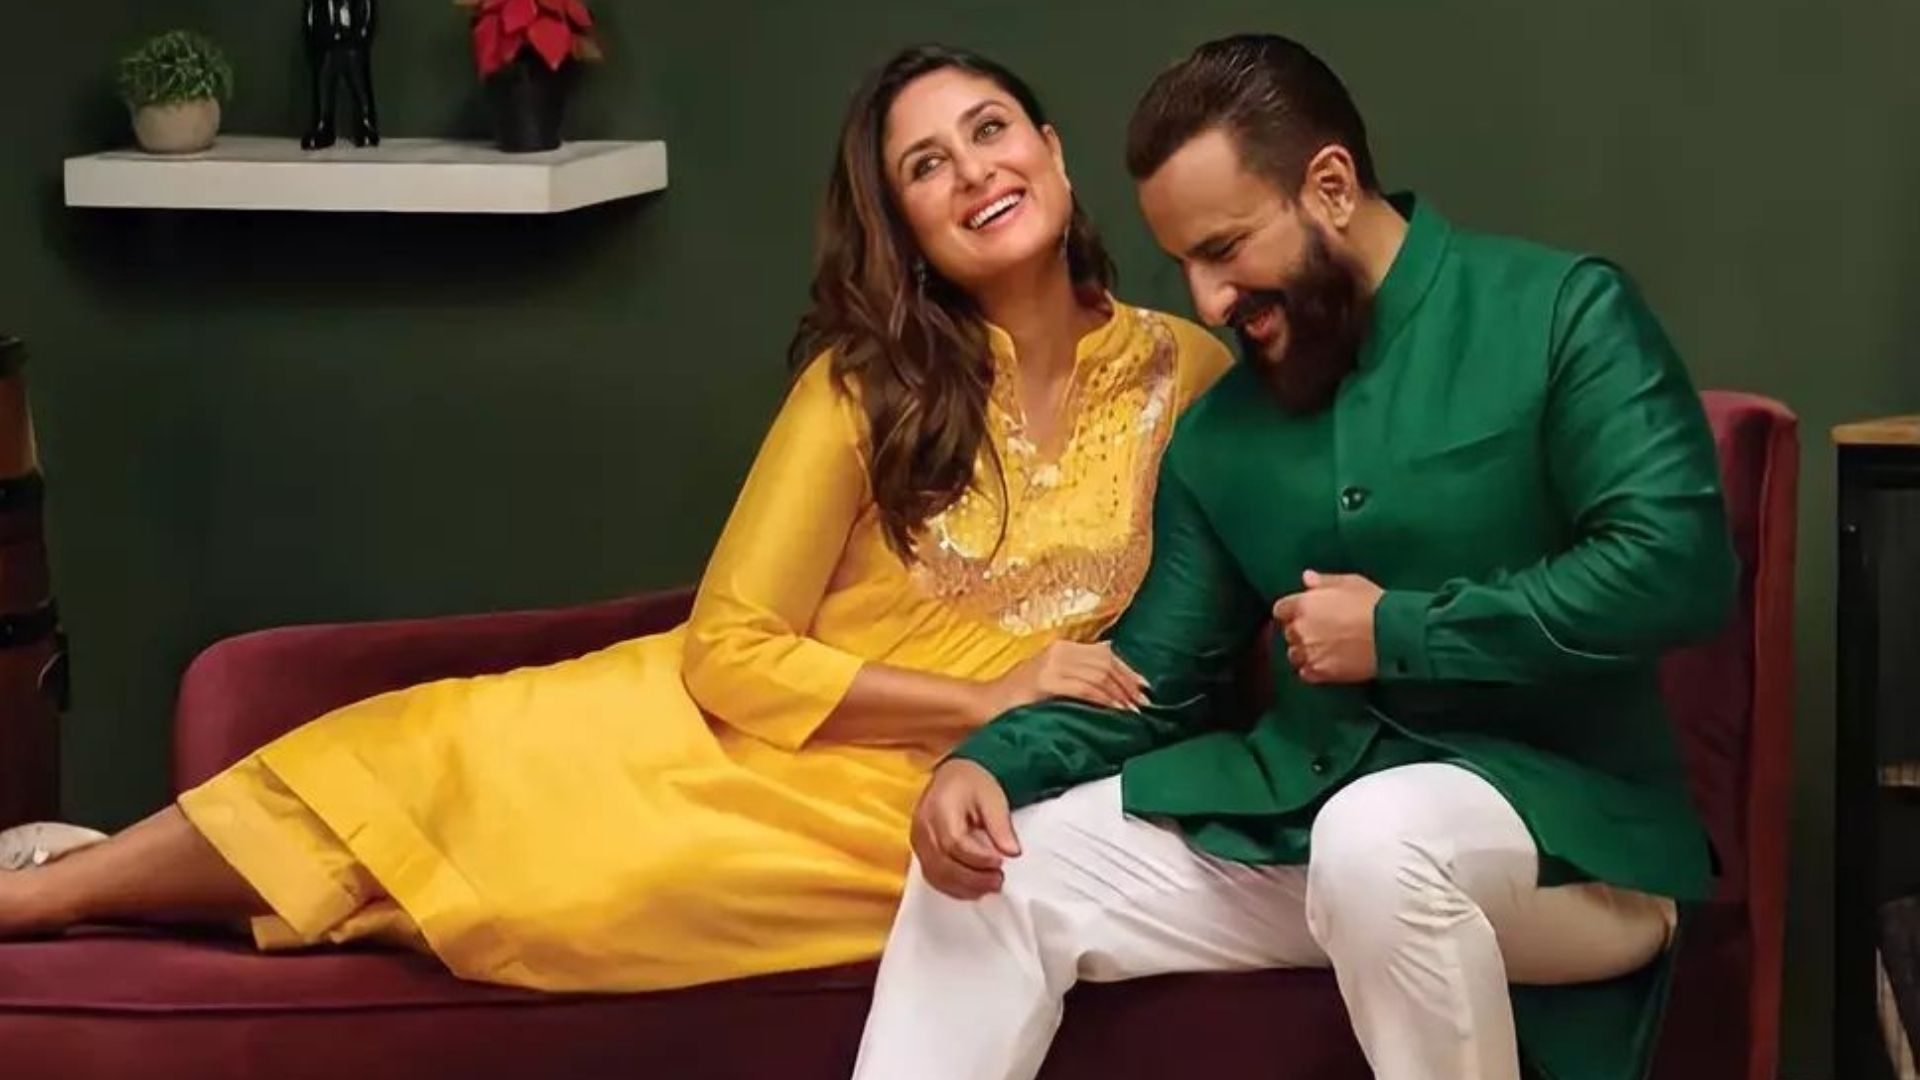 Kareena Kapoor Khan And Saif Ali Khan Anniversary: Actress Posts A Heartfelt Wish For The Most Handsome Man In The World; Shares A Priceless TB Photo